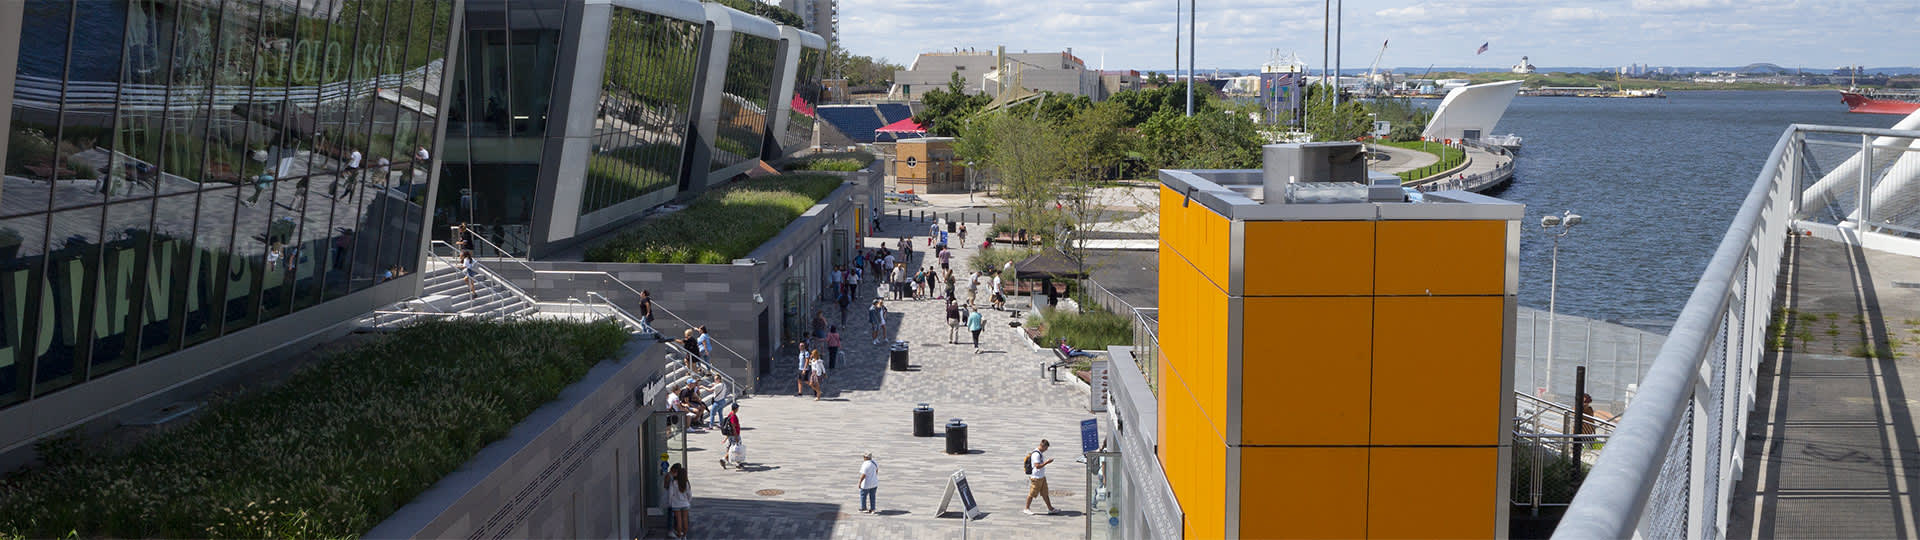 Empire Outlets, St George, Staten Island,